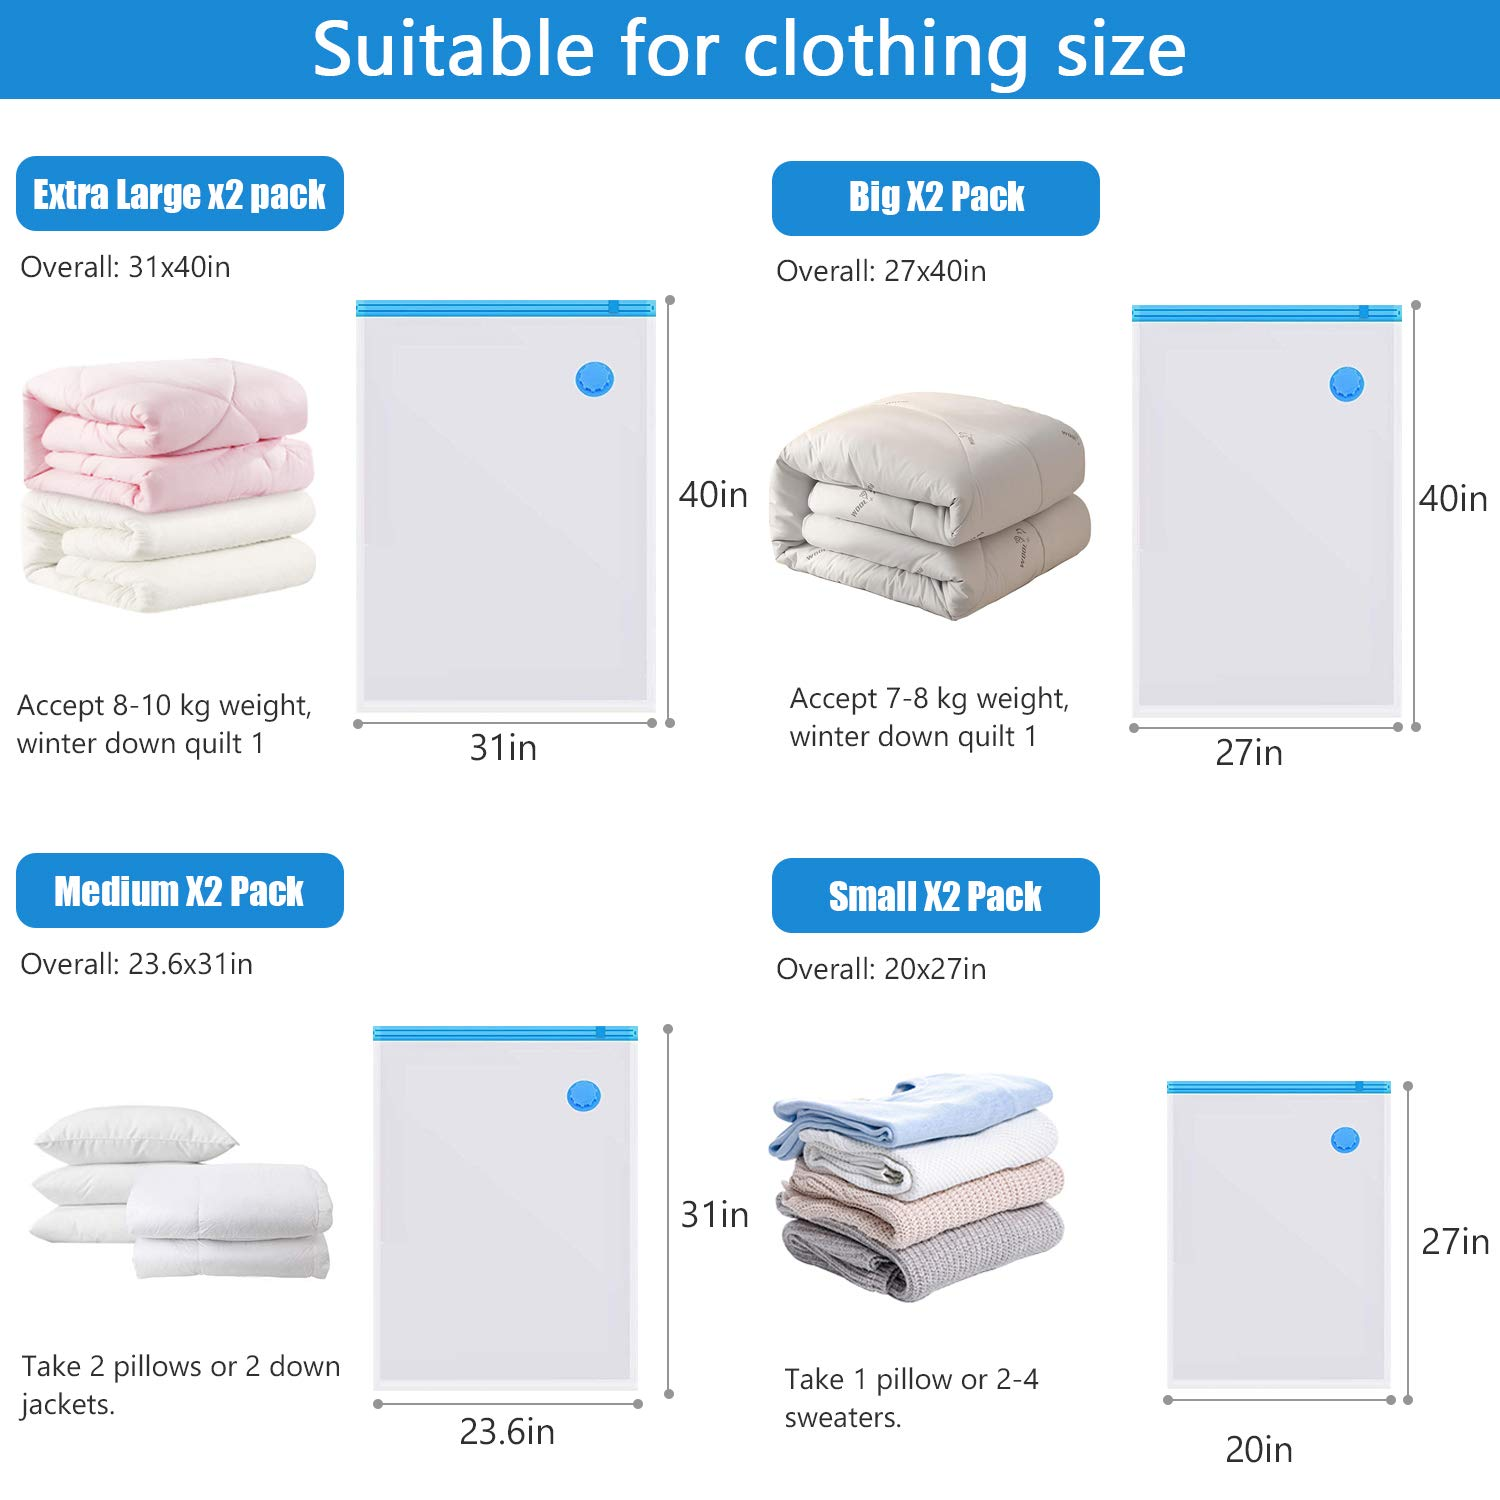 Space-Saver Bags with Hand Pump Traveling Bedding 8PCS Reusable Vacuum Storage Bags Mildew-proof and Antibacterial 2 Jumbo+2 Extra Large+2 Medium+2 Small for Clothing Compression Storage Bags